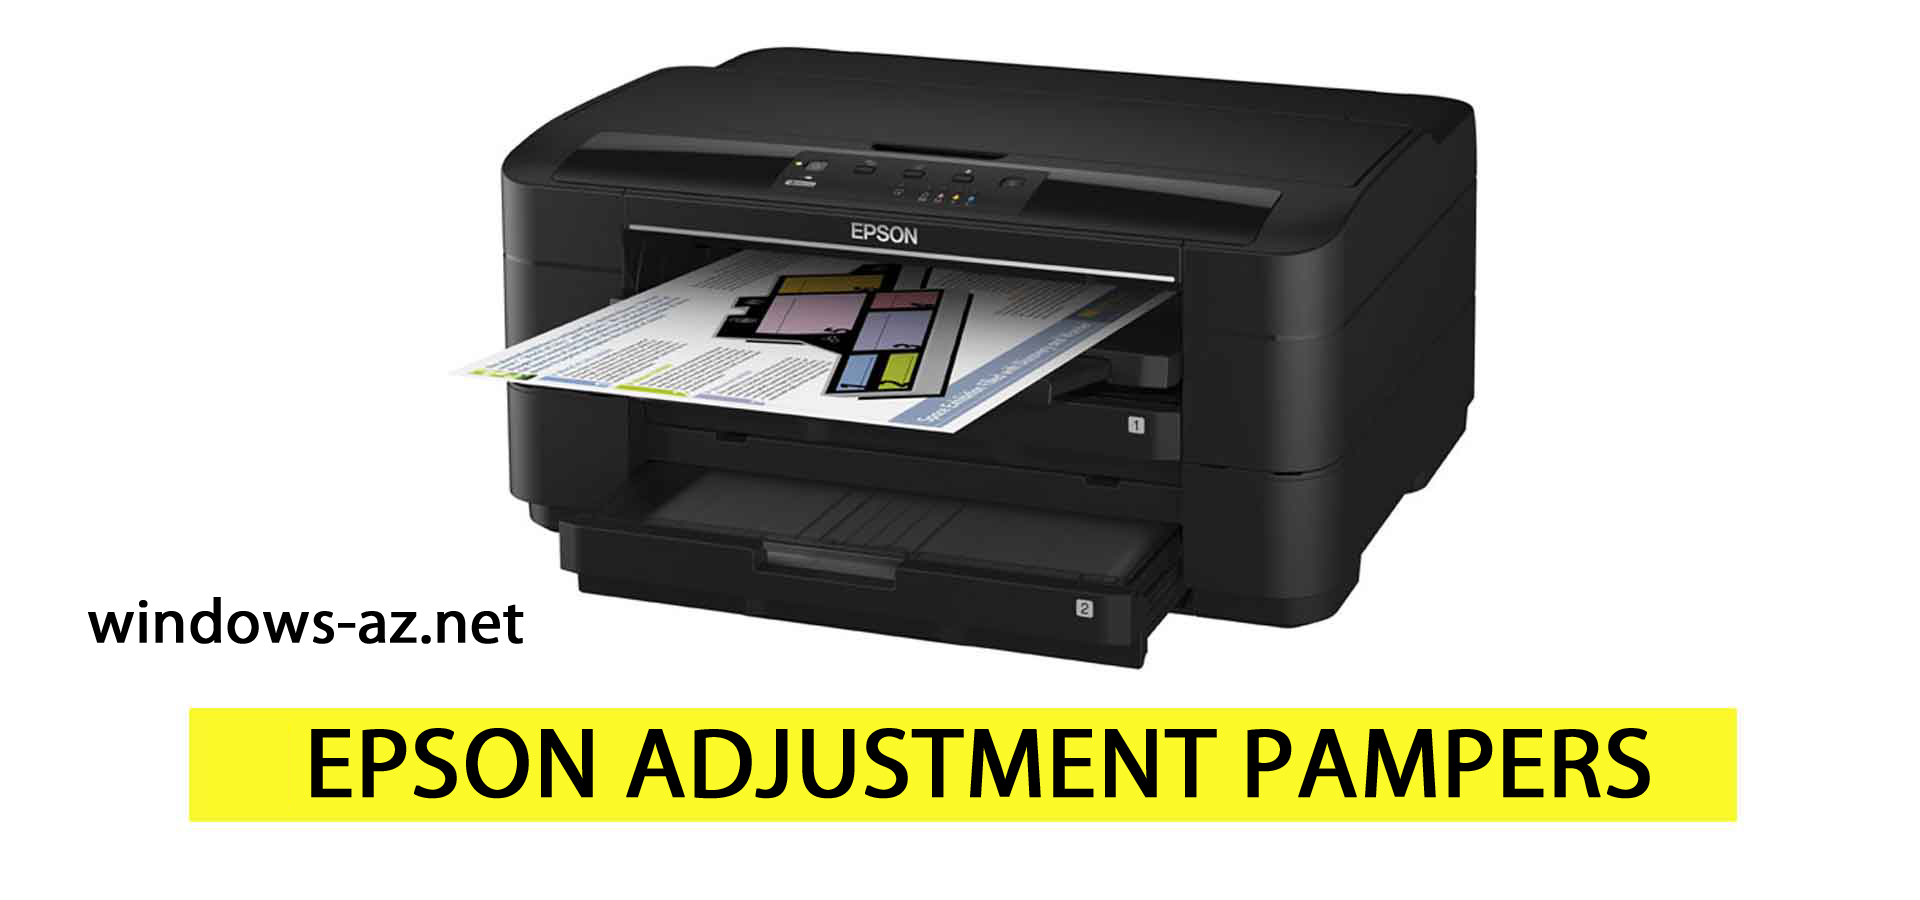 Epson adjustment pampers modellər